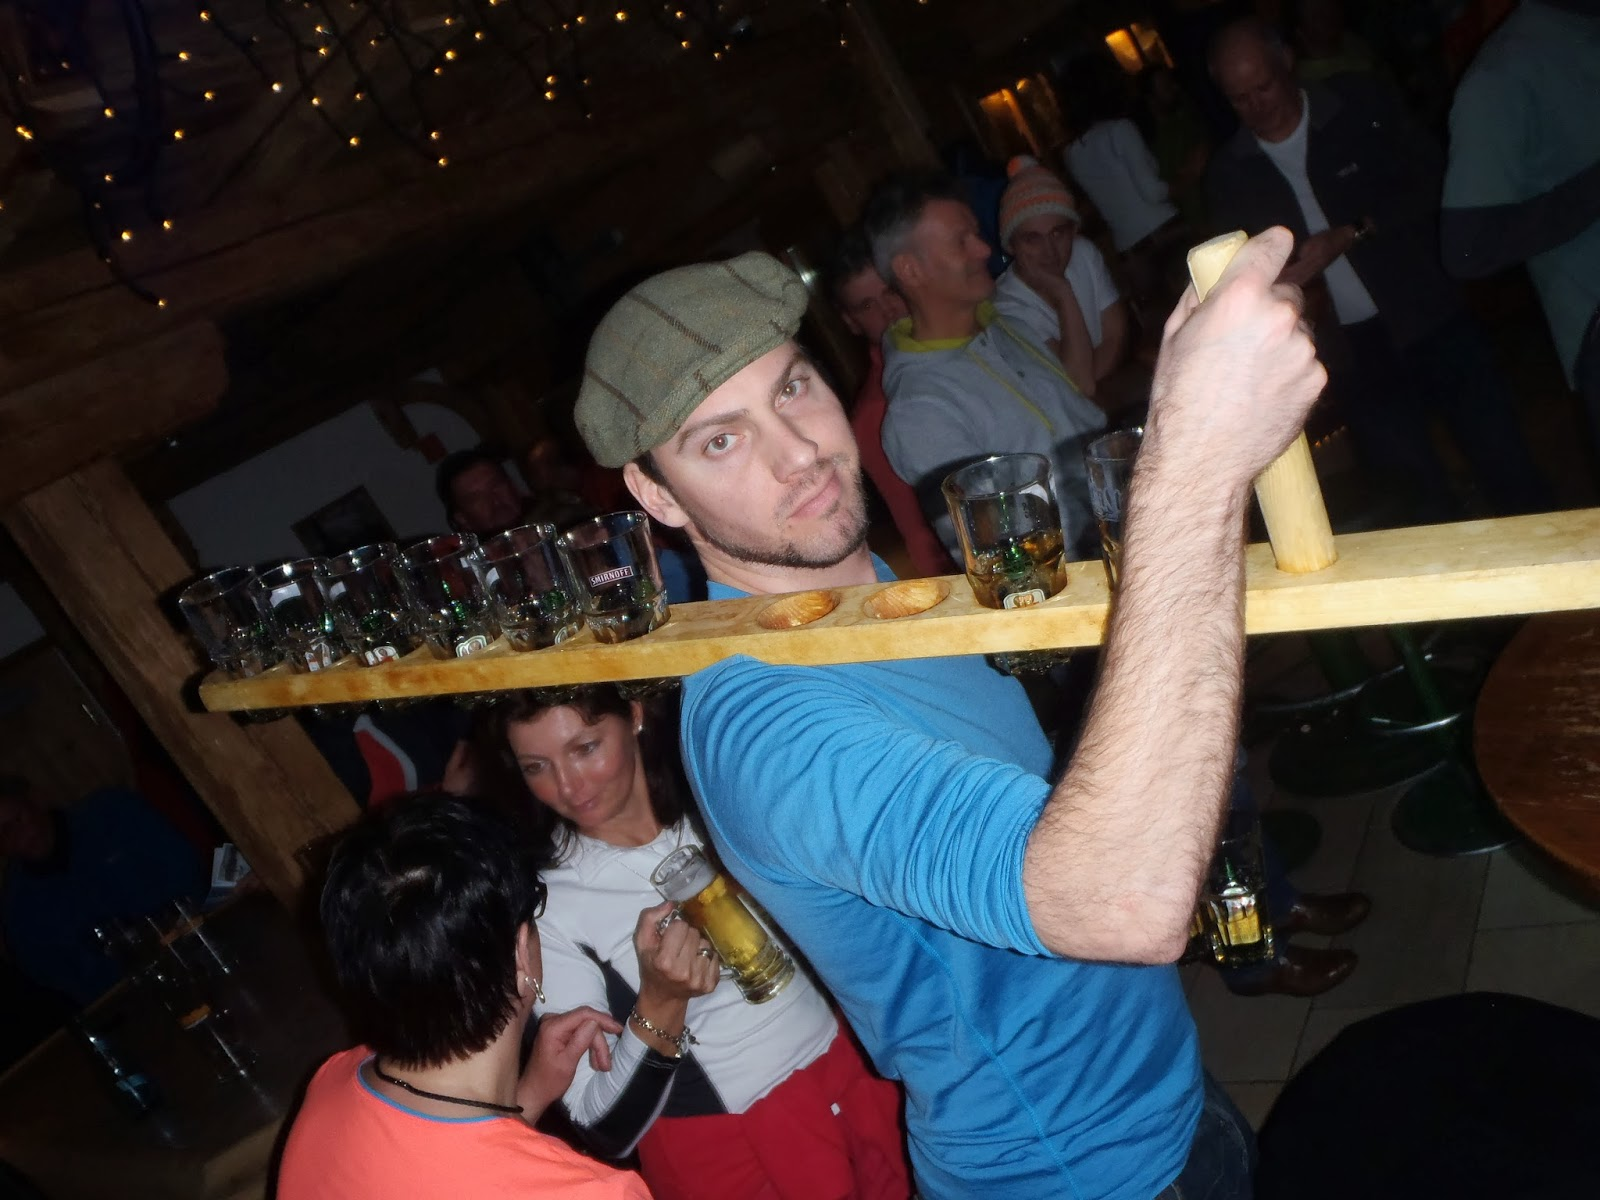 A metre of Flying Hirsh, Jagerbombs - Bruck n' Stadl, Mayrhofen